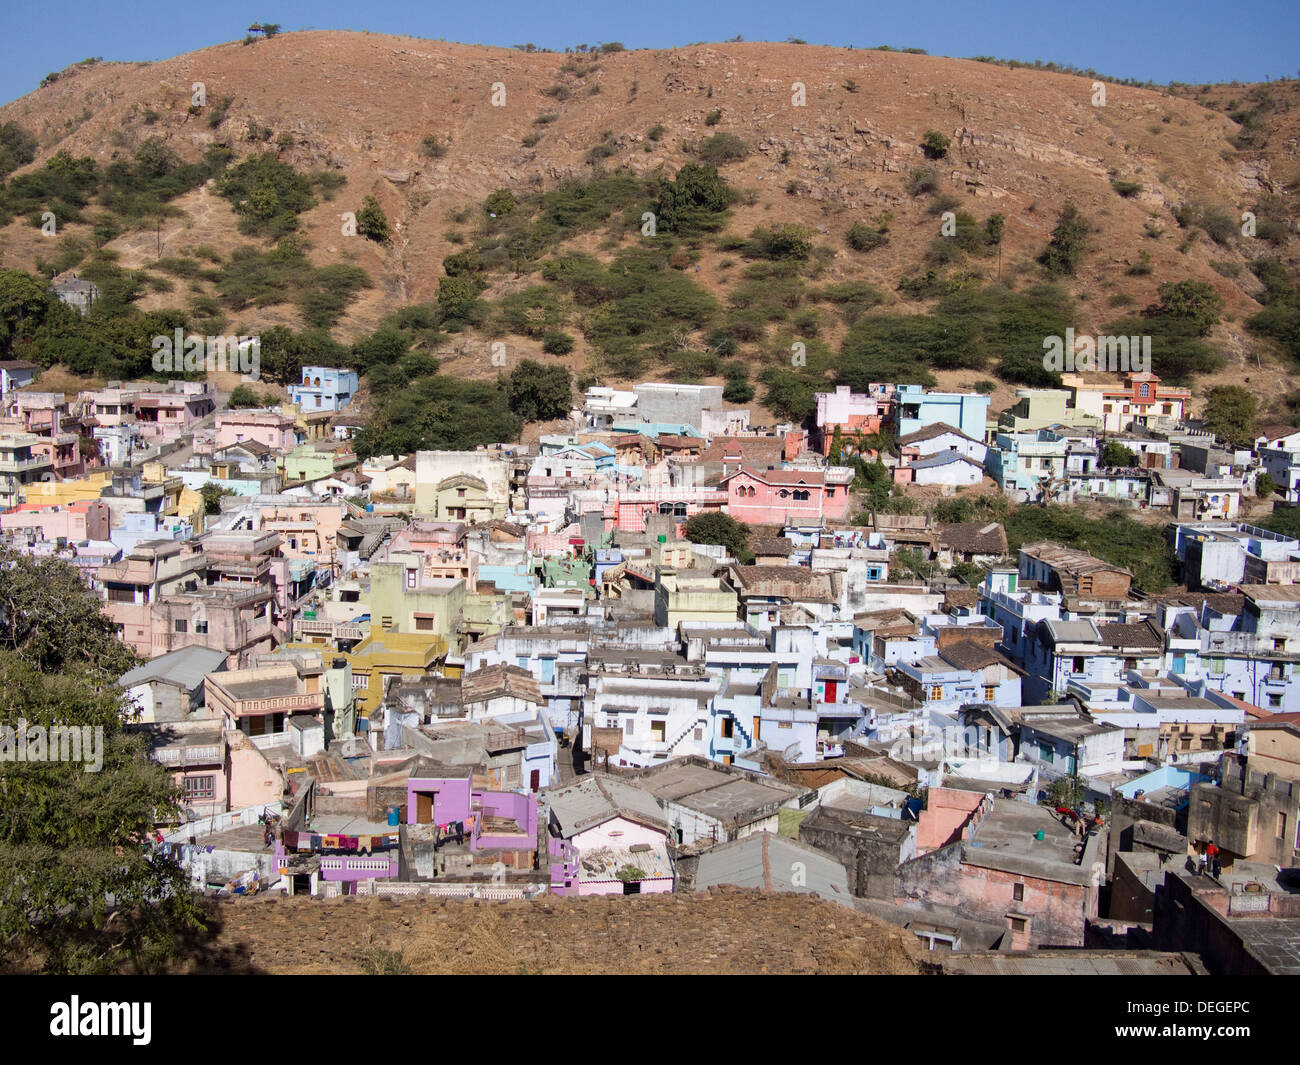 Hillside human settlement in Durgapur, Rajasthan, India. - Stock Image